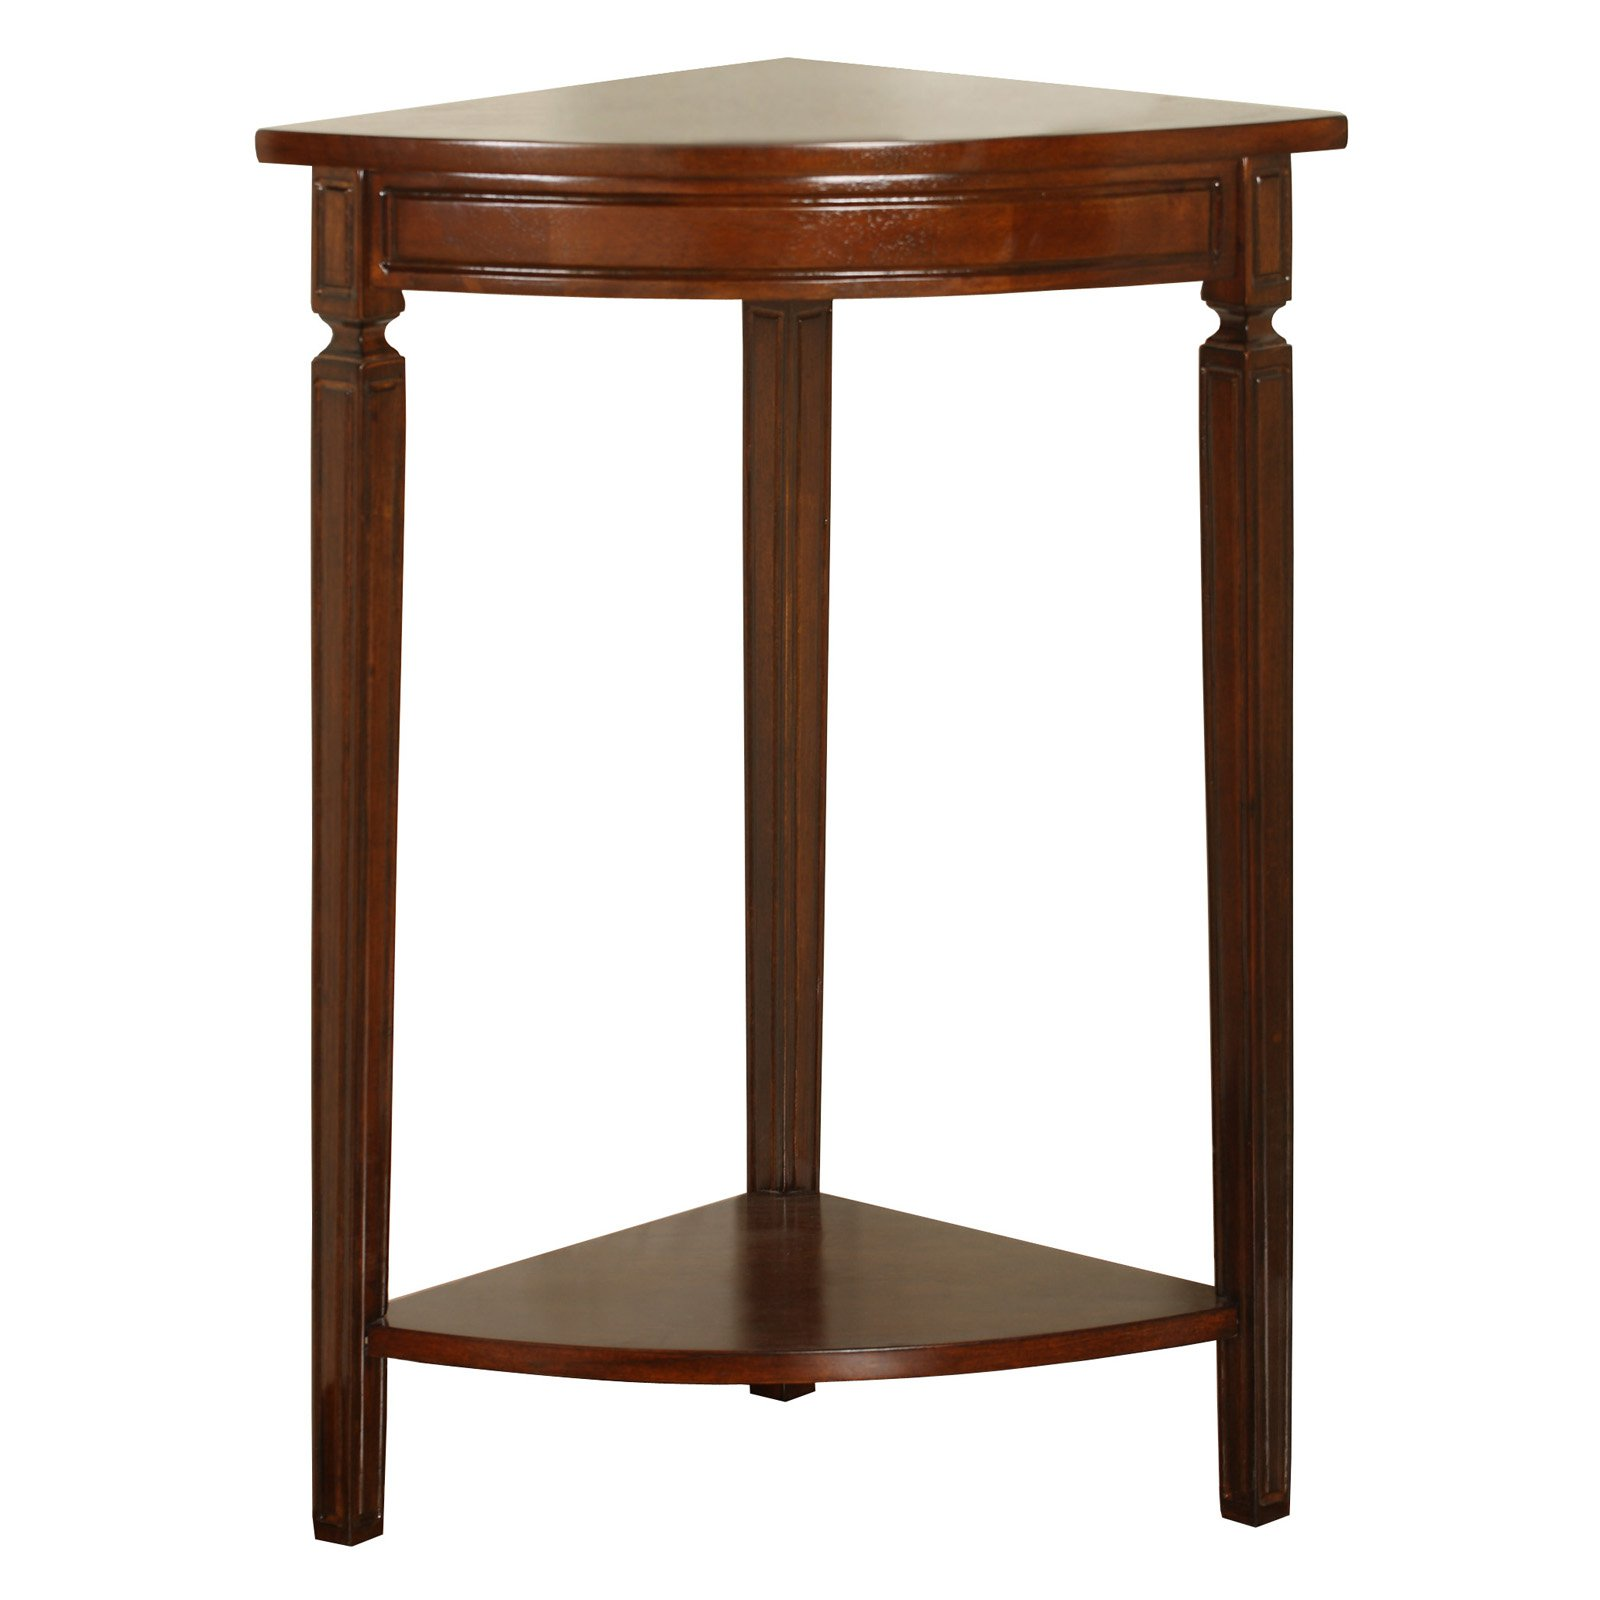 corner side table foyer accent tables white entryway furniture with mirror pier one mirrored nightstand round pedestal pottery barn bedside world market lamps target outdoor